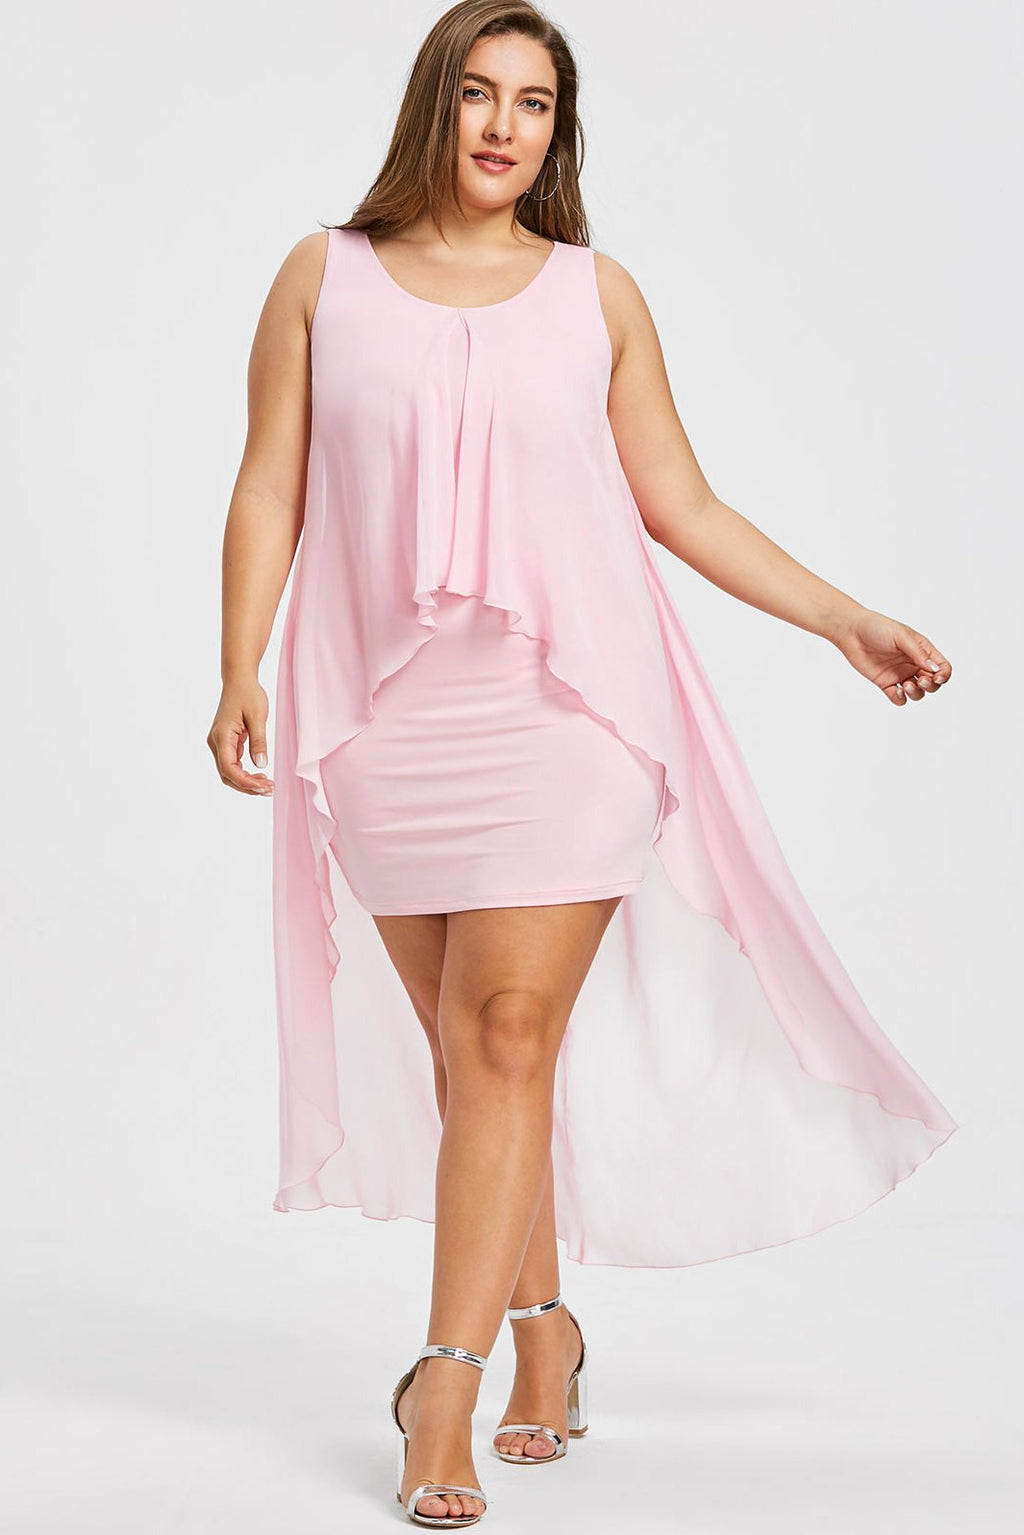 a9708236ef74a5 Plus Size Divine High Low Sleeveless Layered Dress